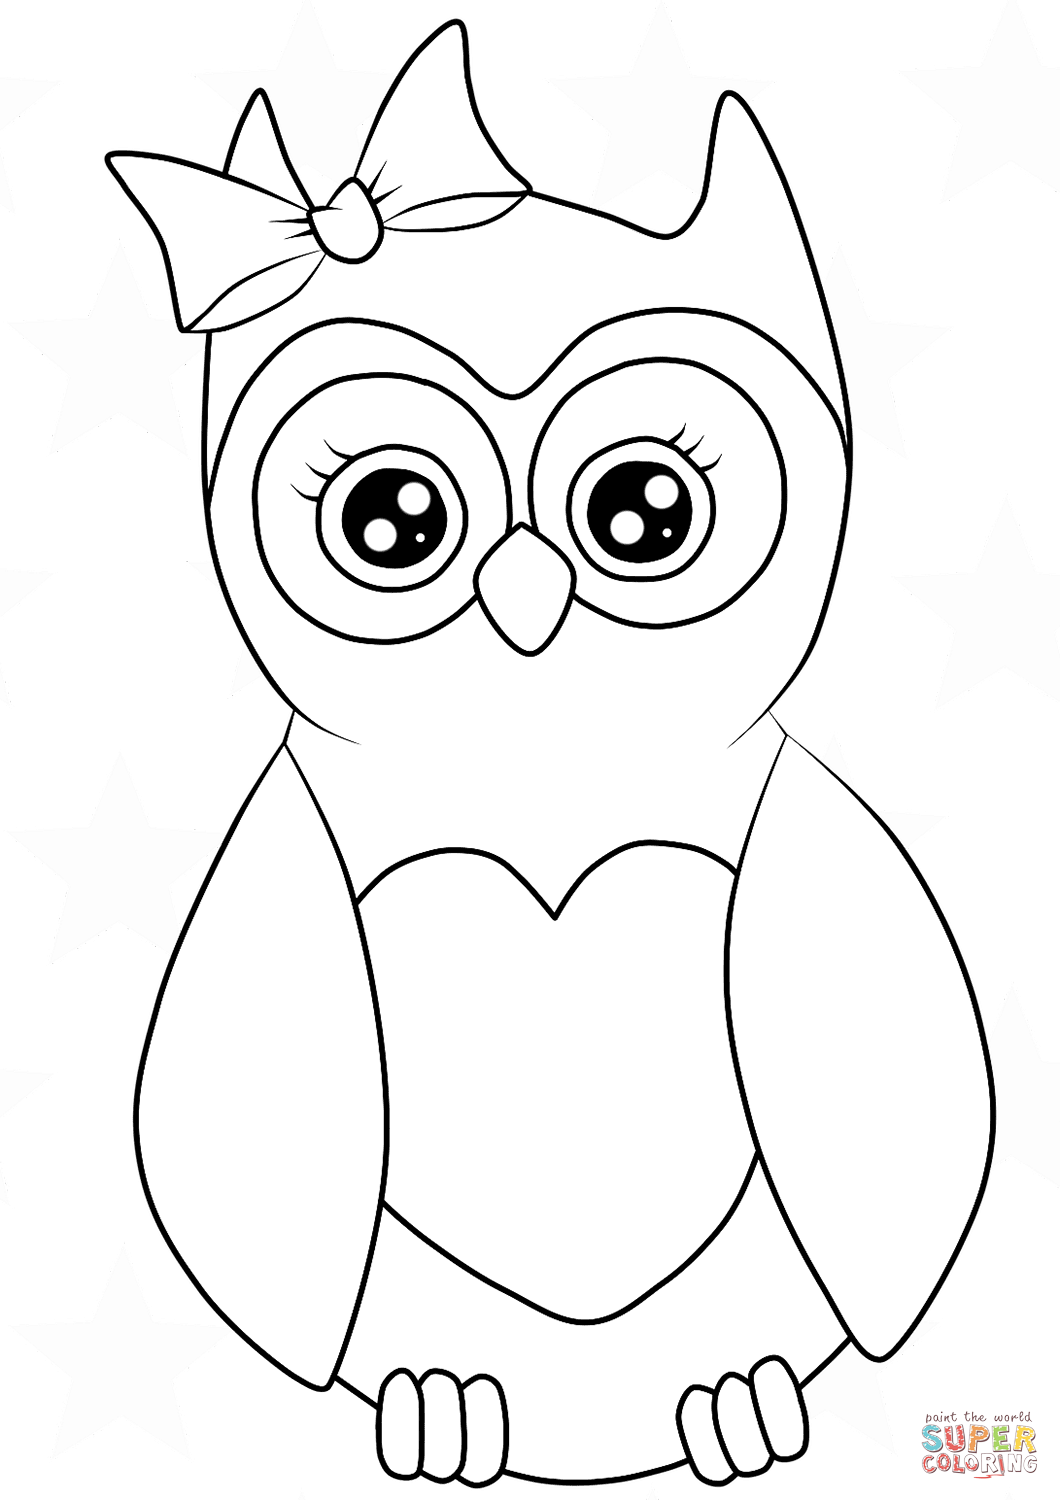 easy cute owl coloring pages owl coloring pages coloringbay owl coloring easy pages cute